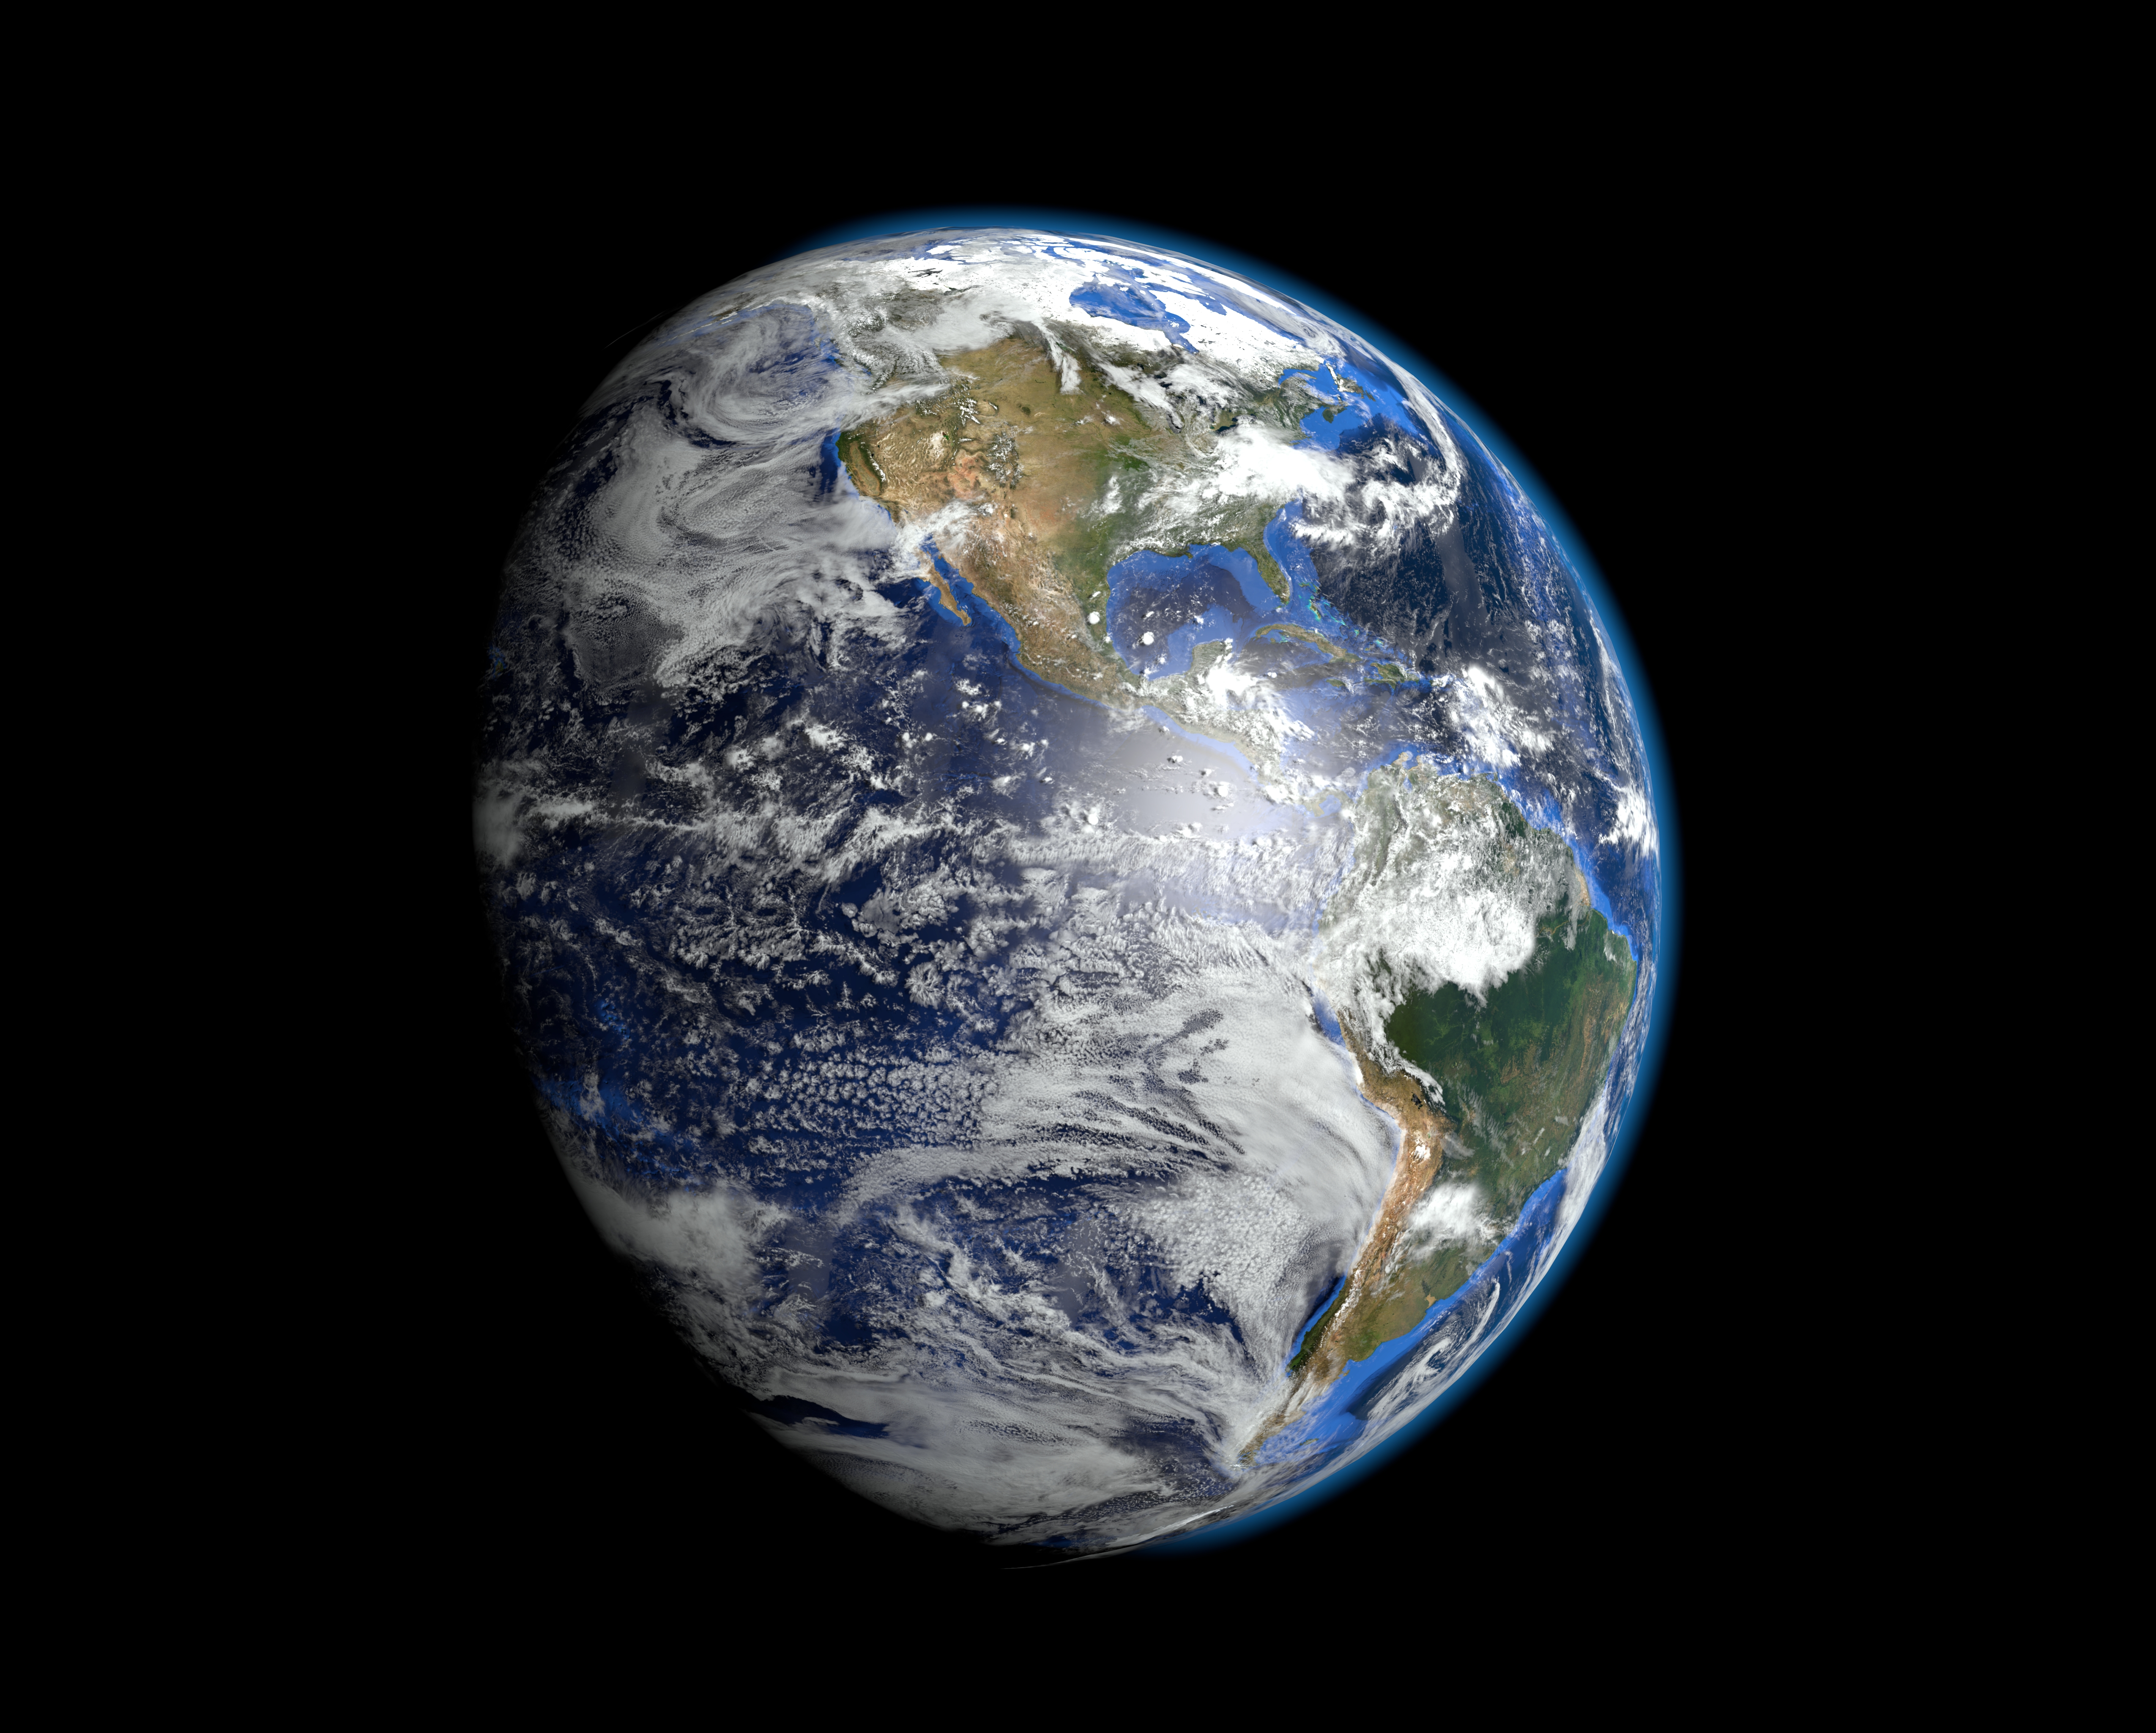 Does the Earth Rotate Slower or Faster at the Top?